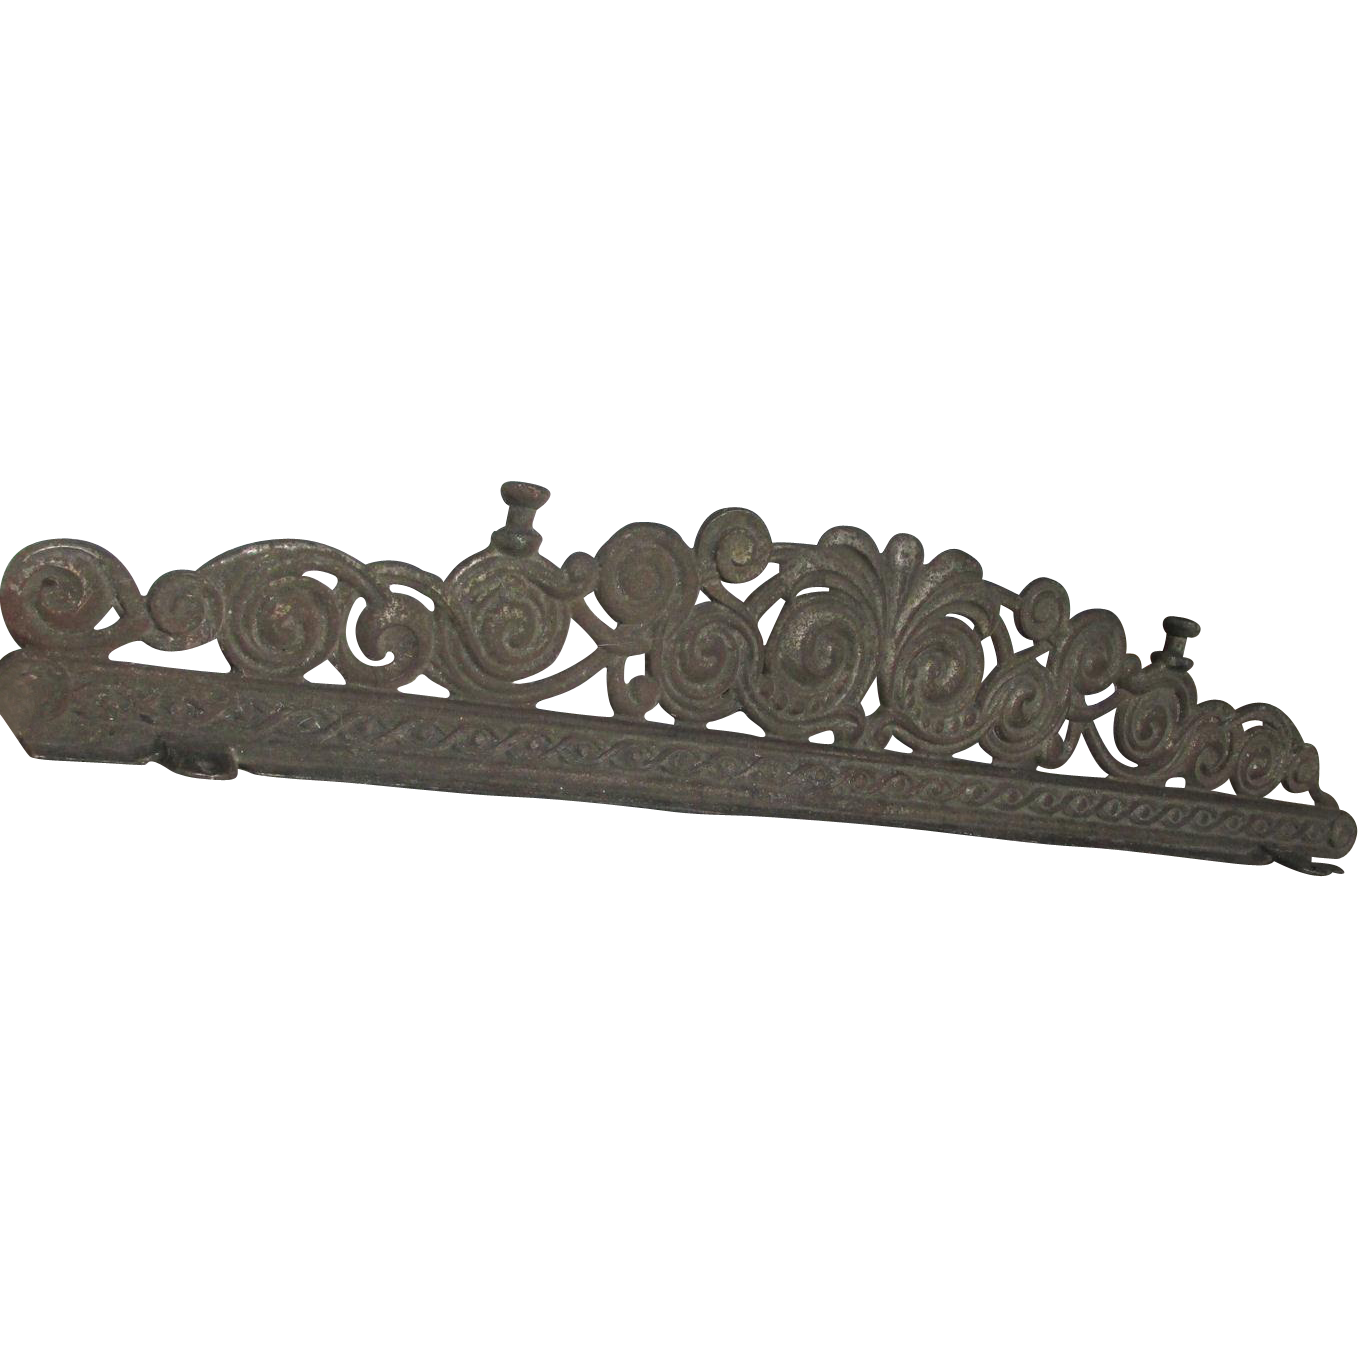 Antique Cast Iron Architectural Element, Stove Finial